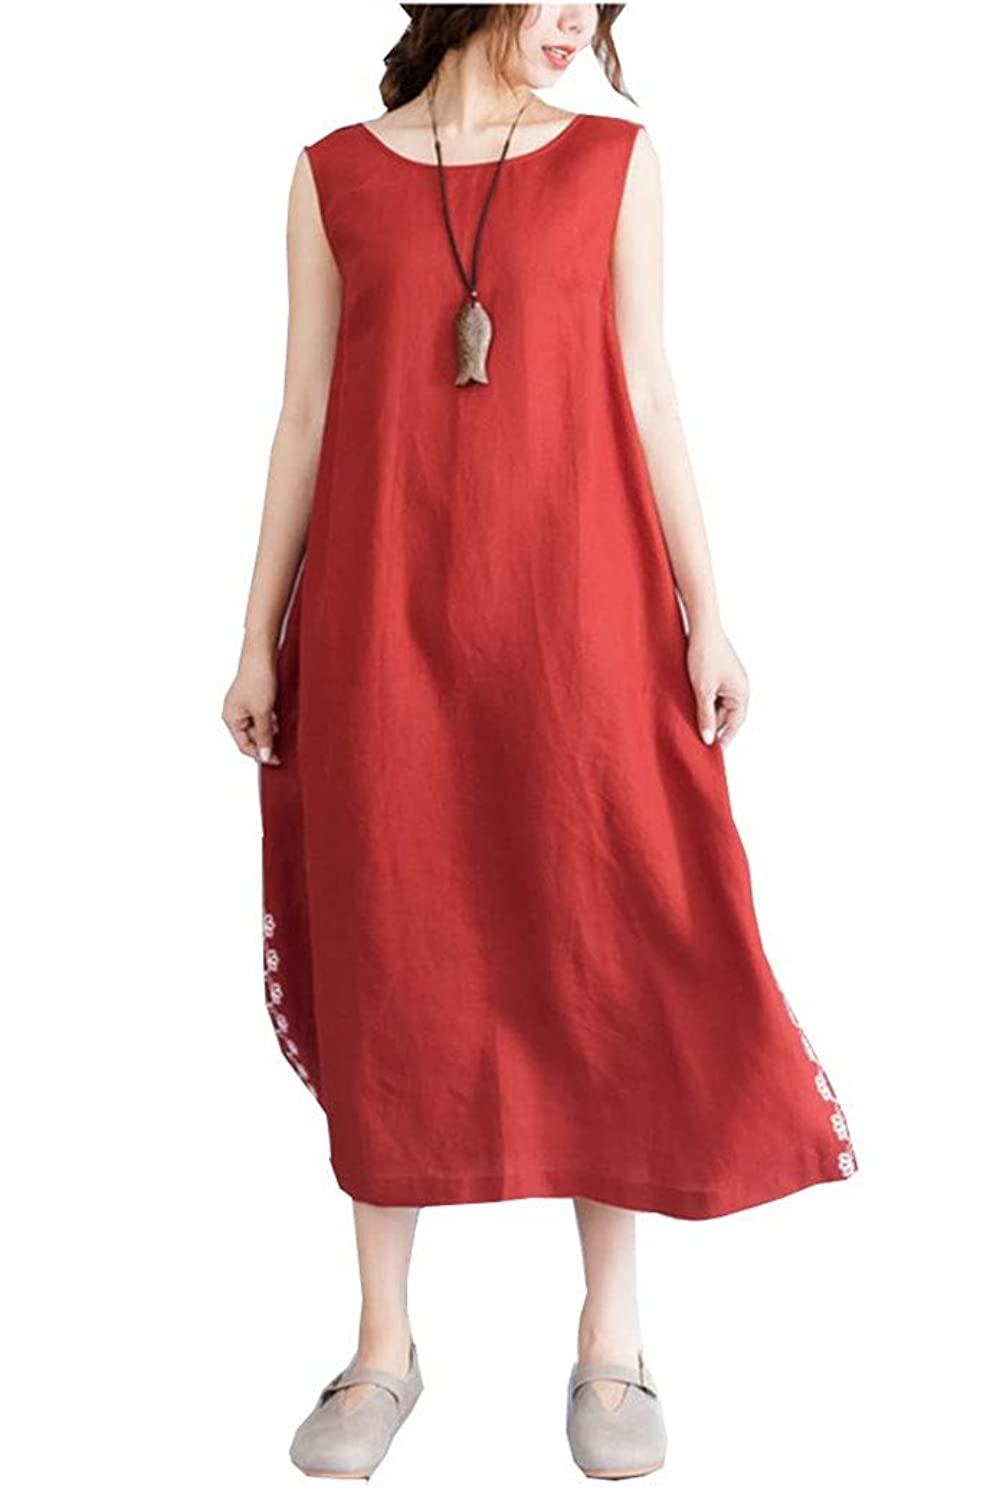 a60e9a157e7ec Material:100% cotton and linen,vintage chinese style,with pocket,round neck.  Color:orange red,special and fashion,wash hand or machine,but butter hand  wash ...